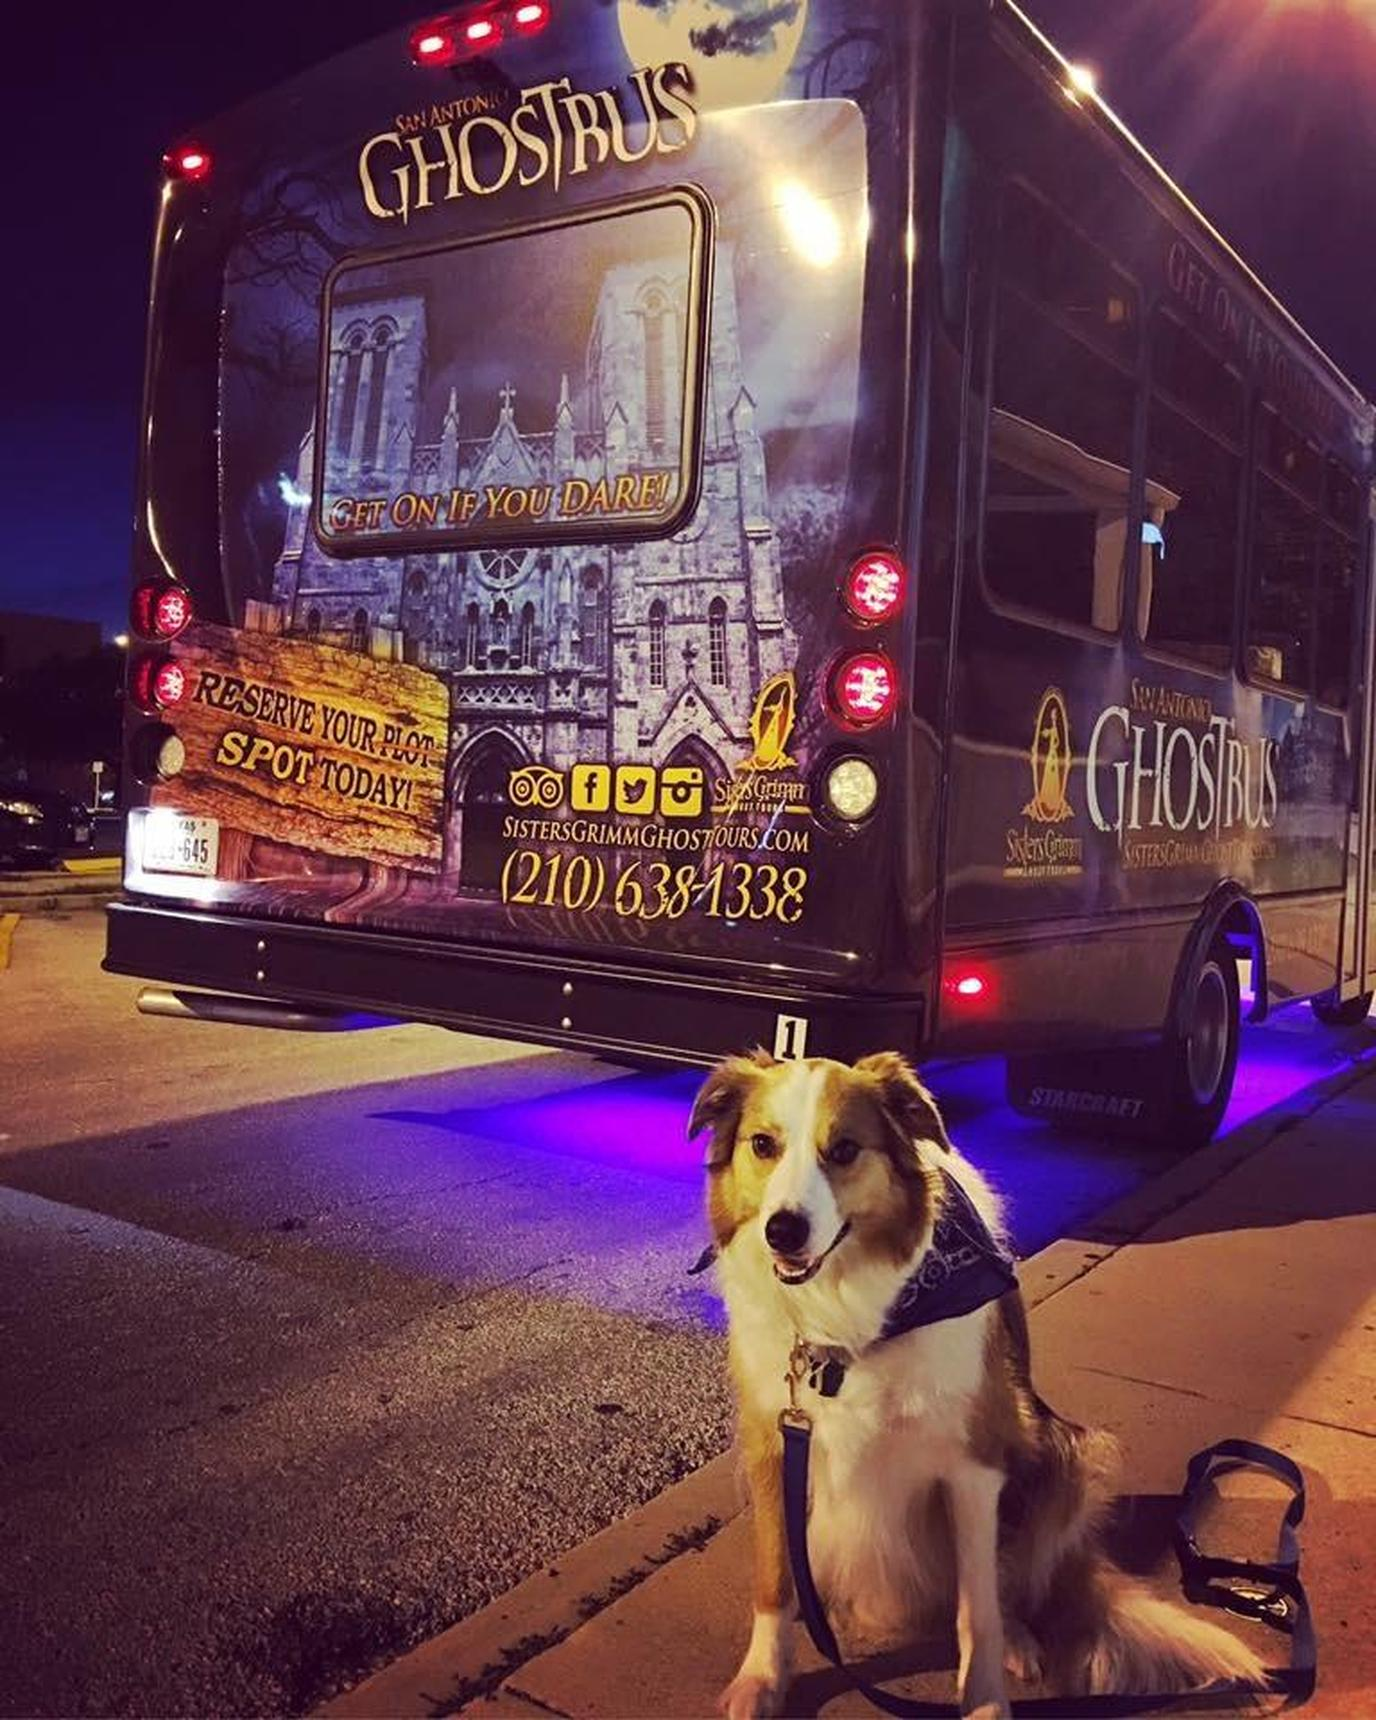 Pet-friendly Sisters Grimm Ghost Tours include the Alamo and more in San Antonio.